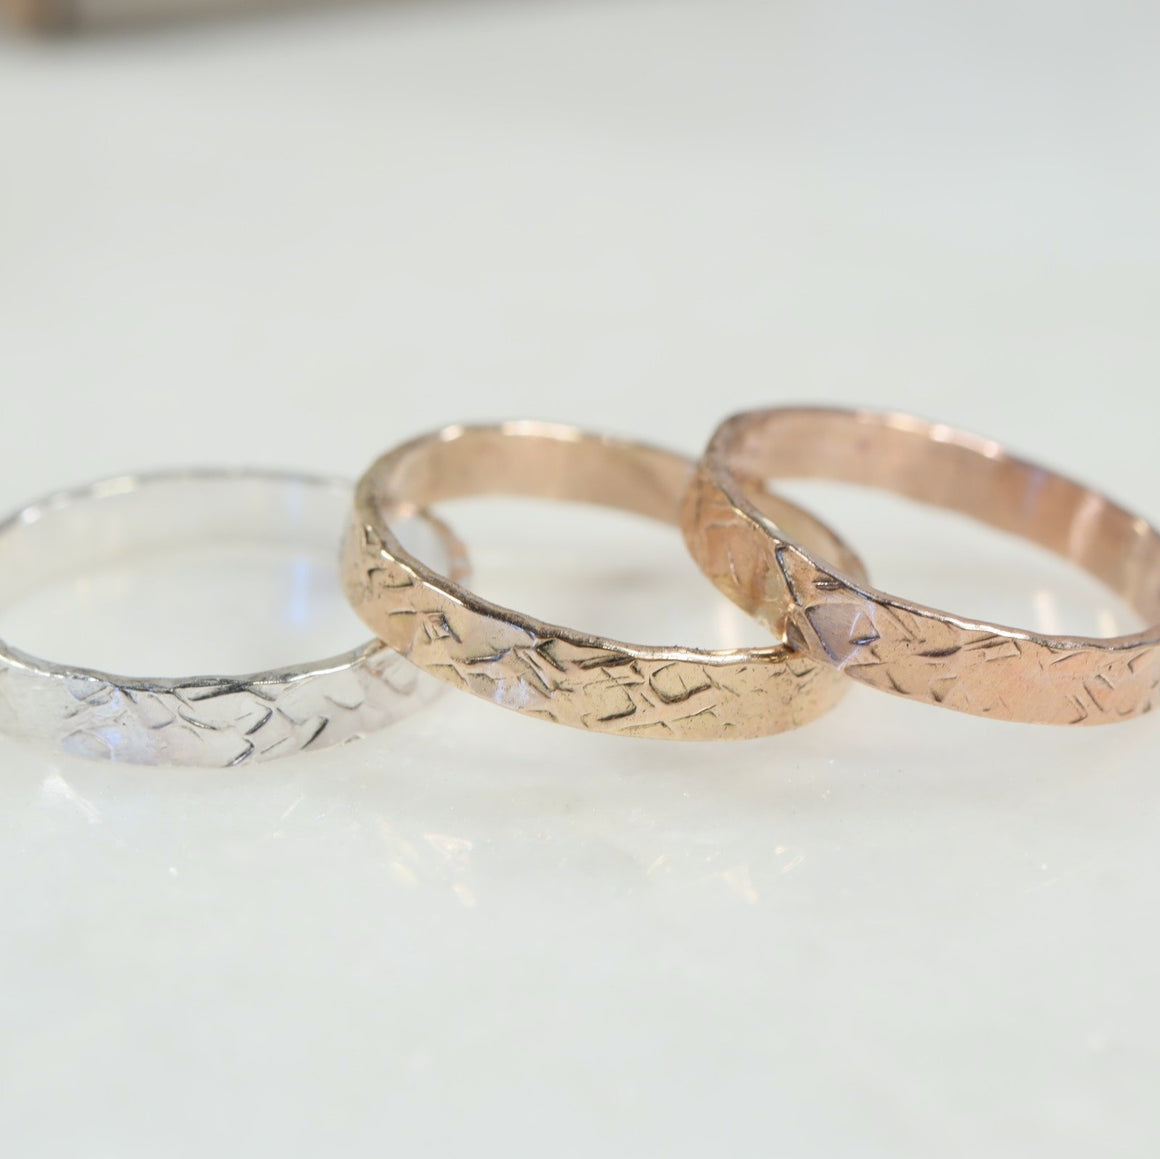 2mm chiseled stamping ring silver, gold, pink gold